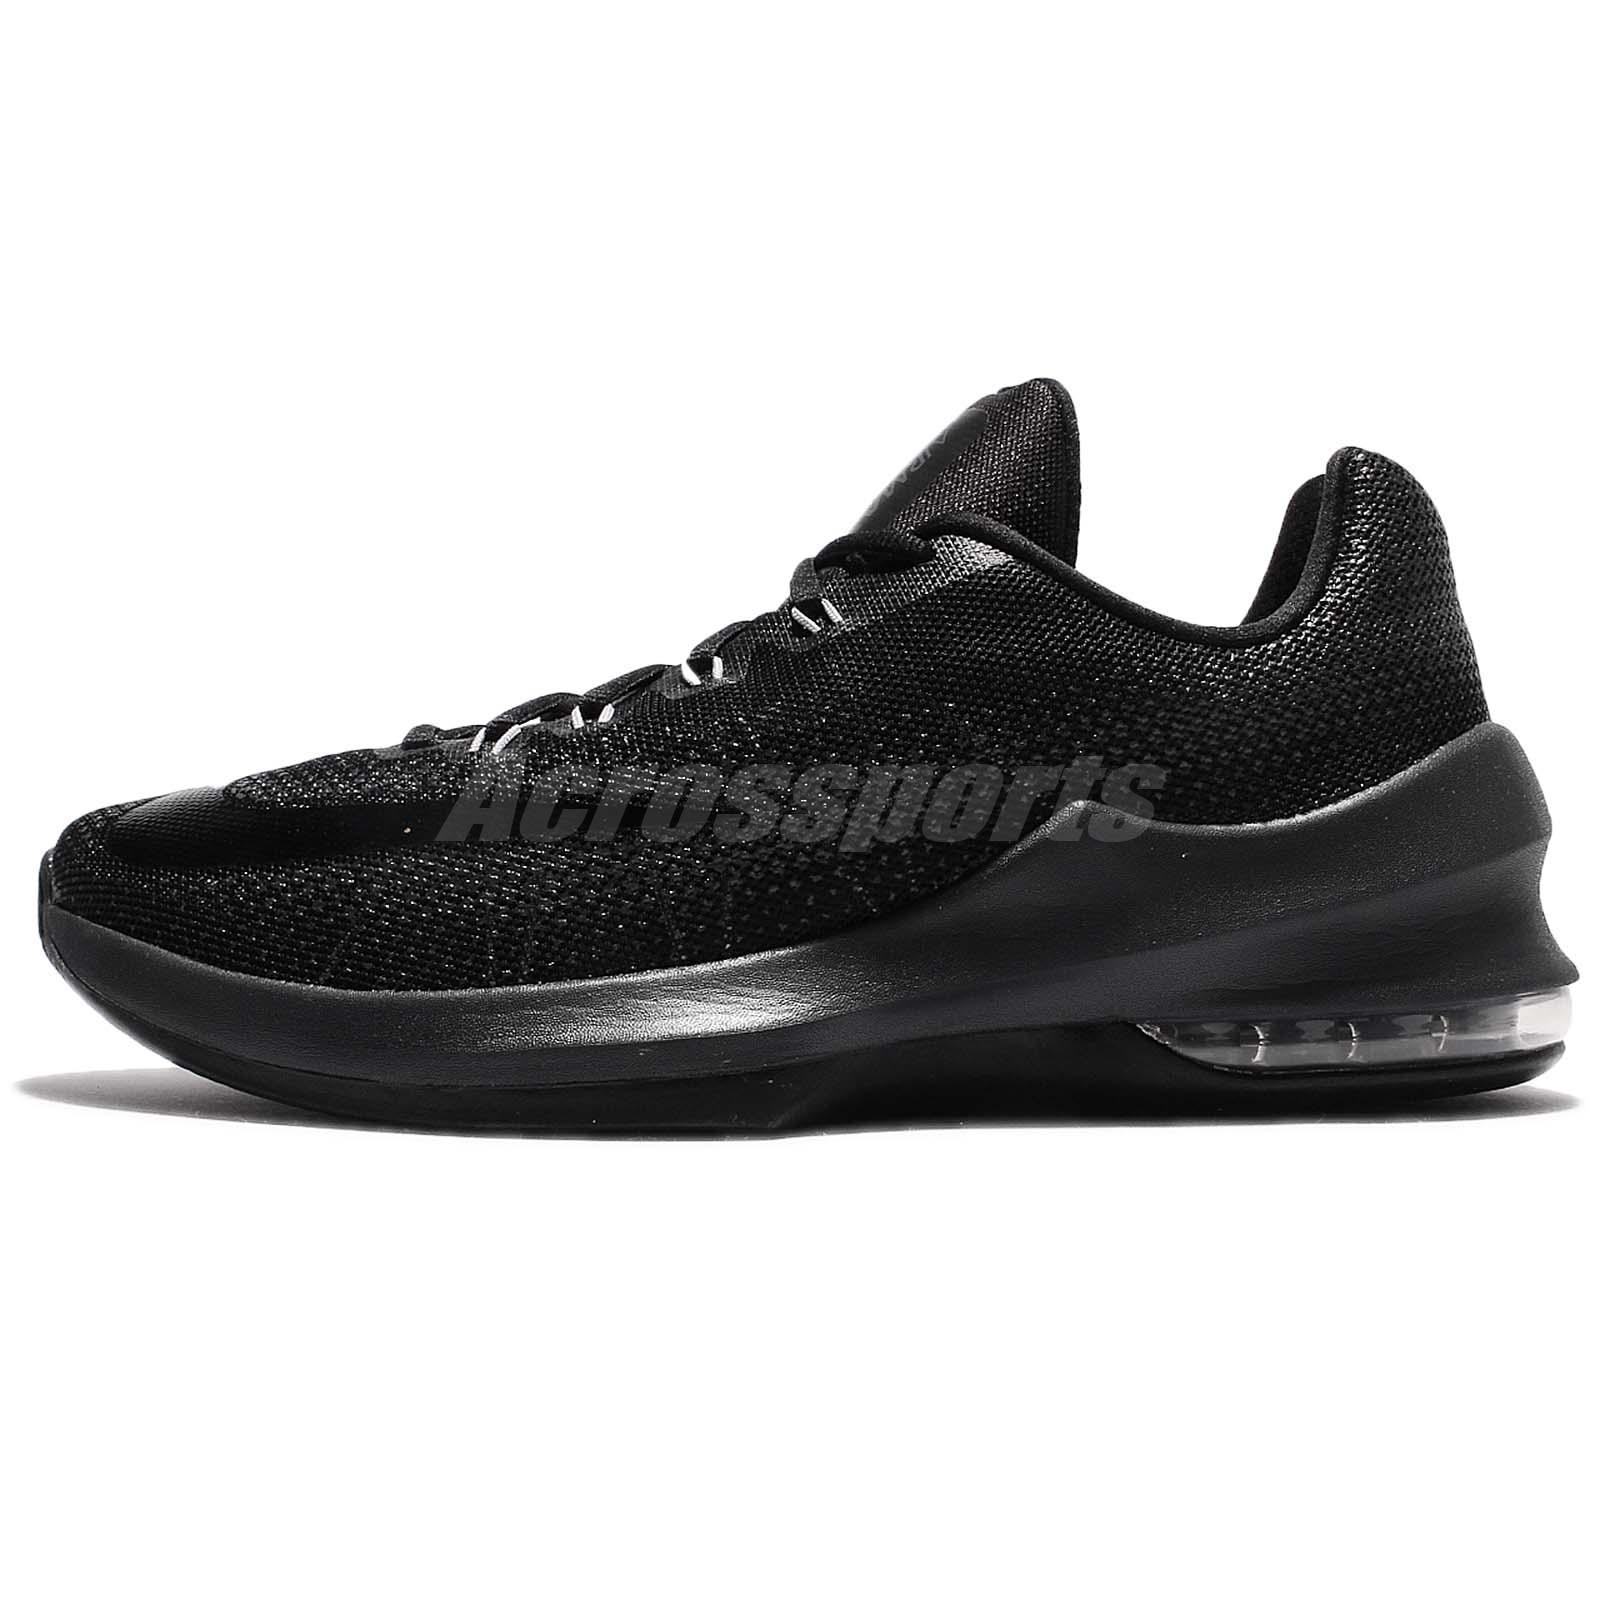 Nike Air Max Infuriate Low Black Men Basketball Shoes Sneakers 852457-001